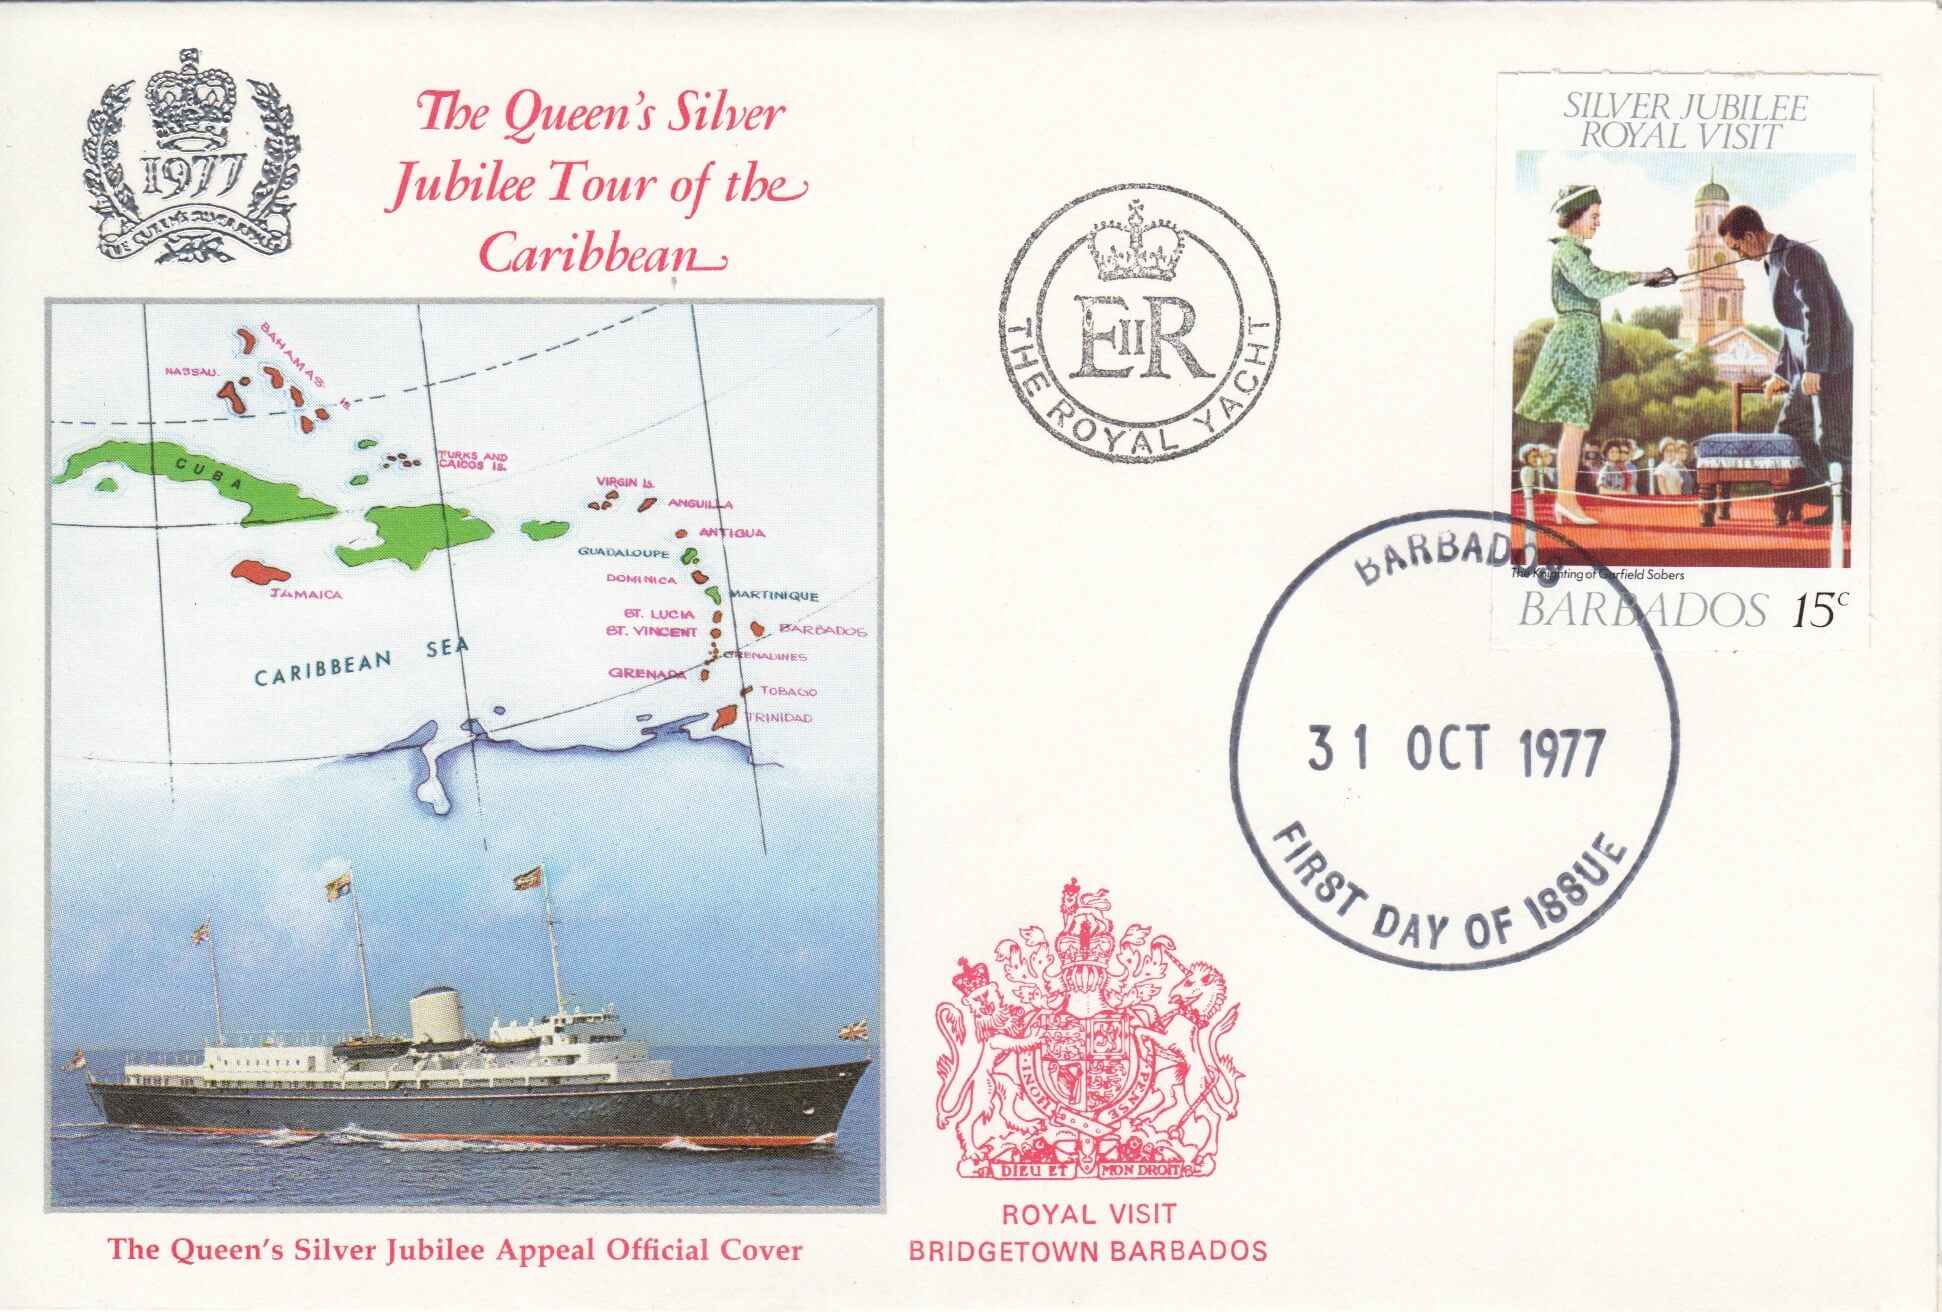 The Queens Silver Jubilee Tour of the Caribbean Commemorative Cover 1977